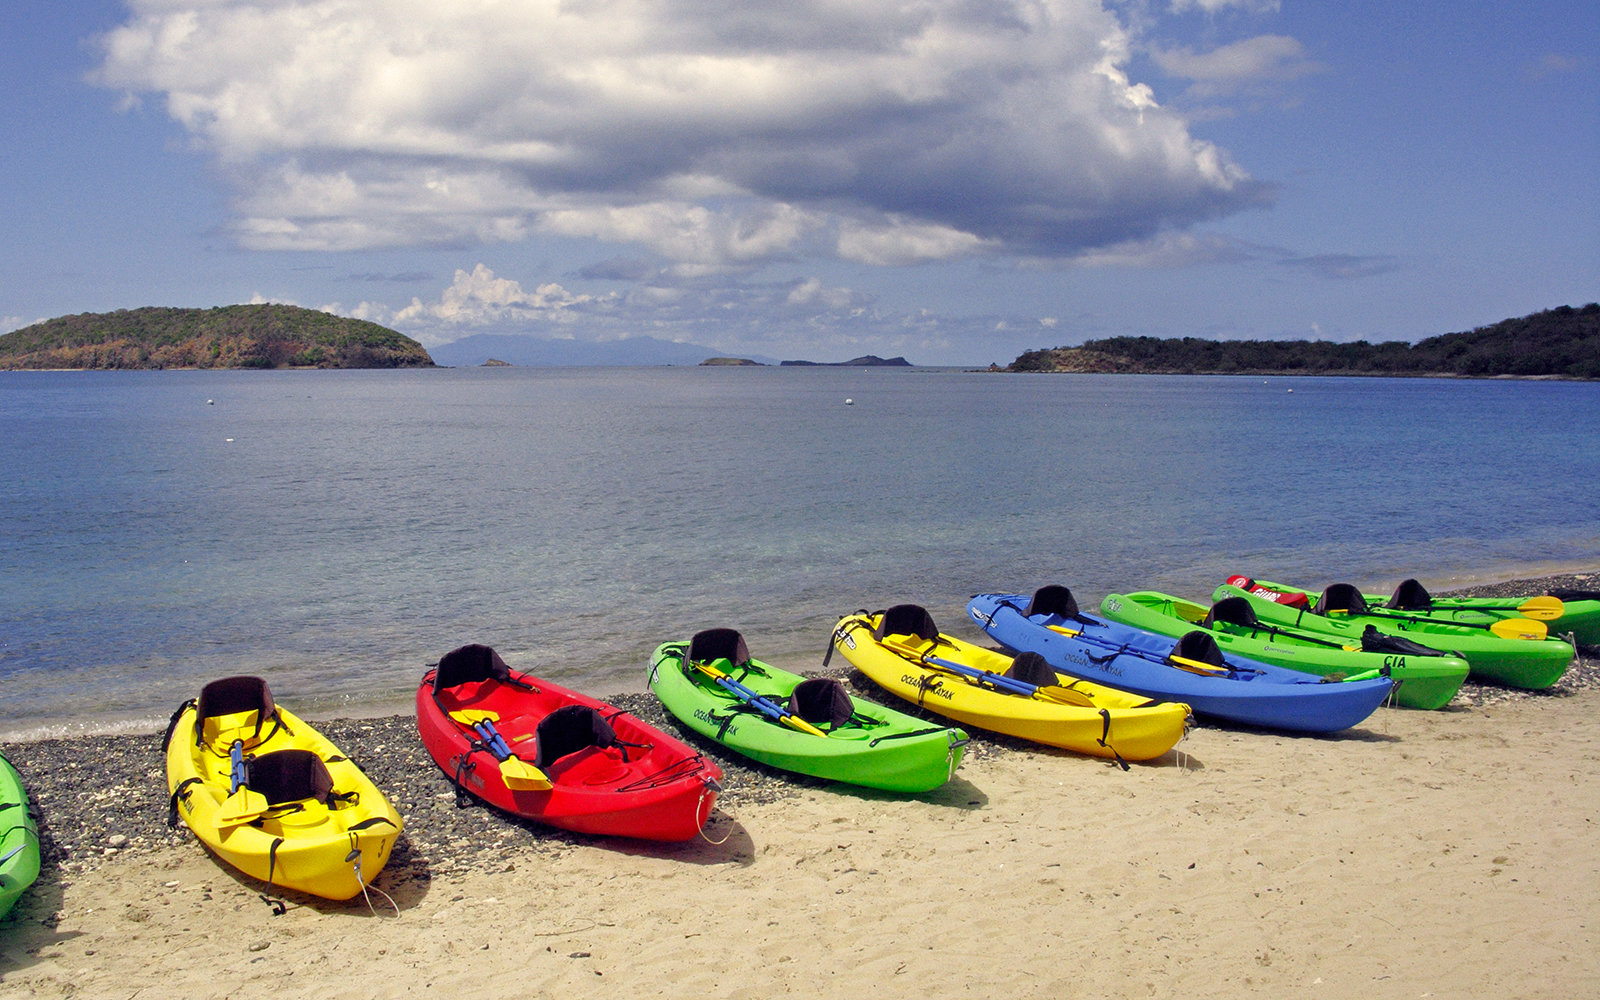 Isla Culebra, Puerto Rico, kayaks on Tamarindo Beach. (Photo By: Education Images/UIG via Getty Images)